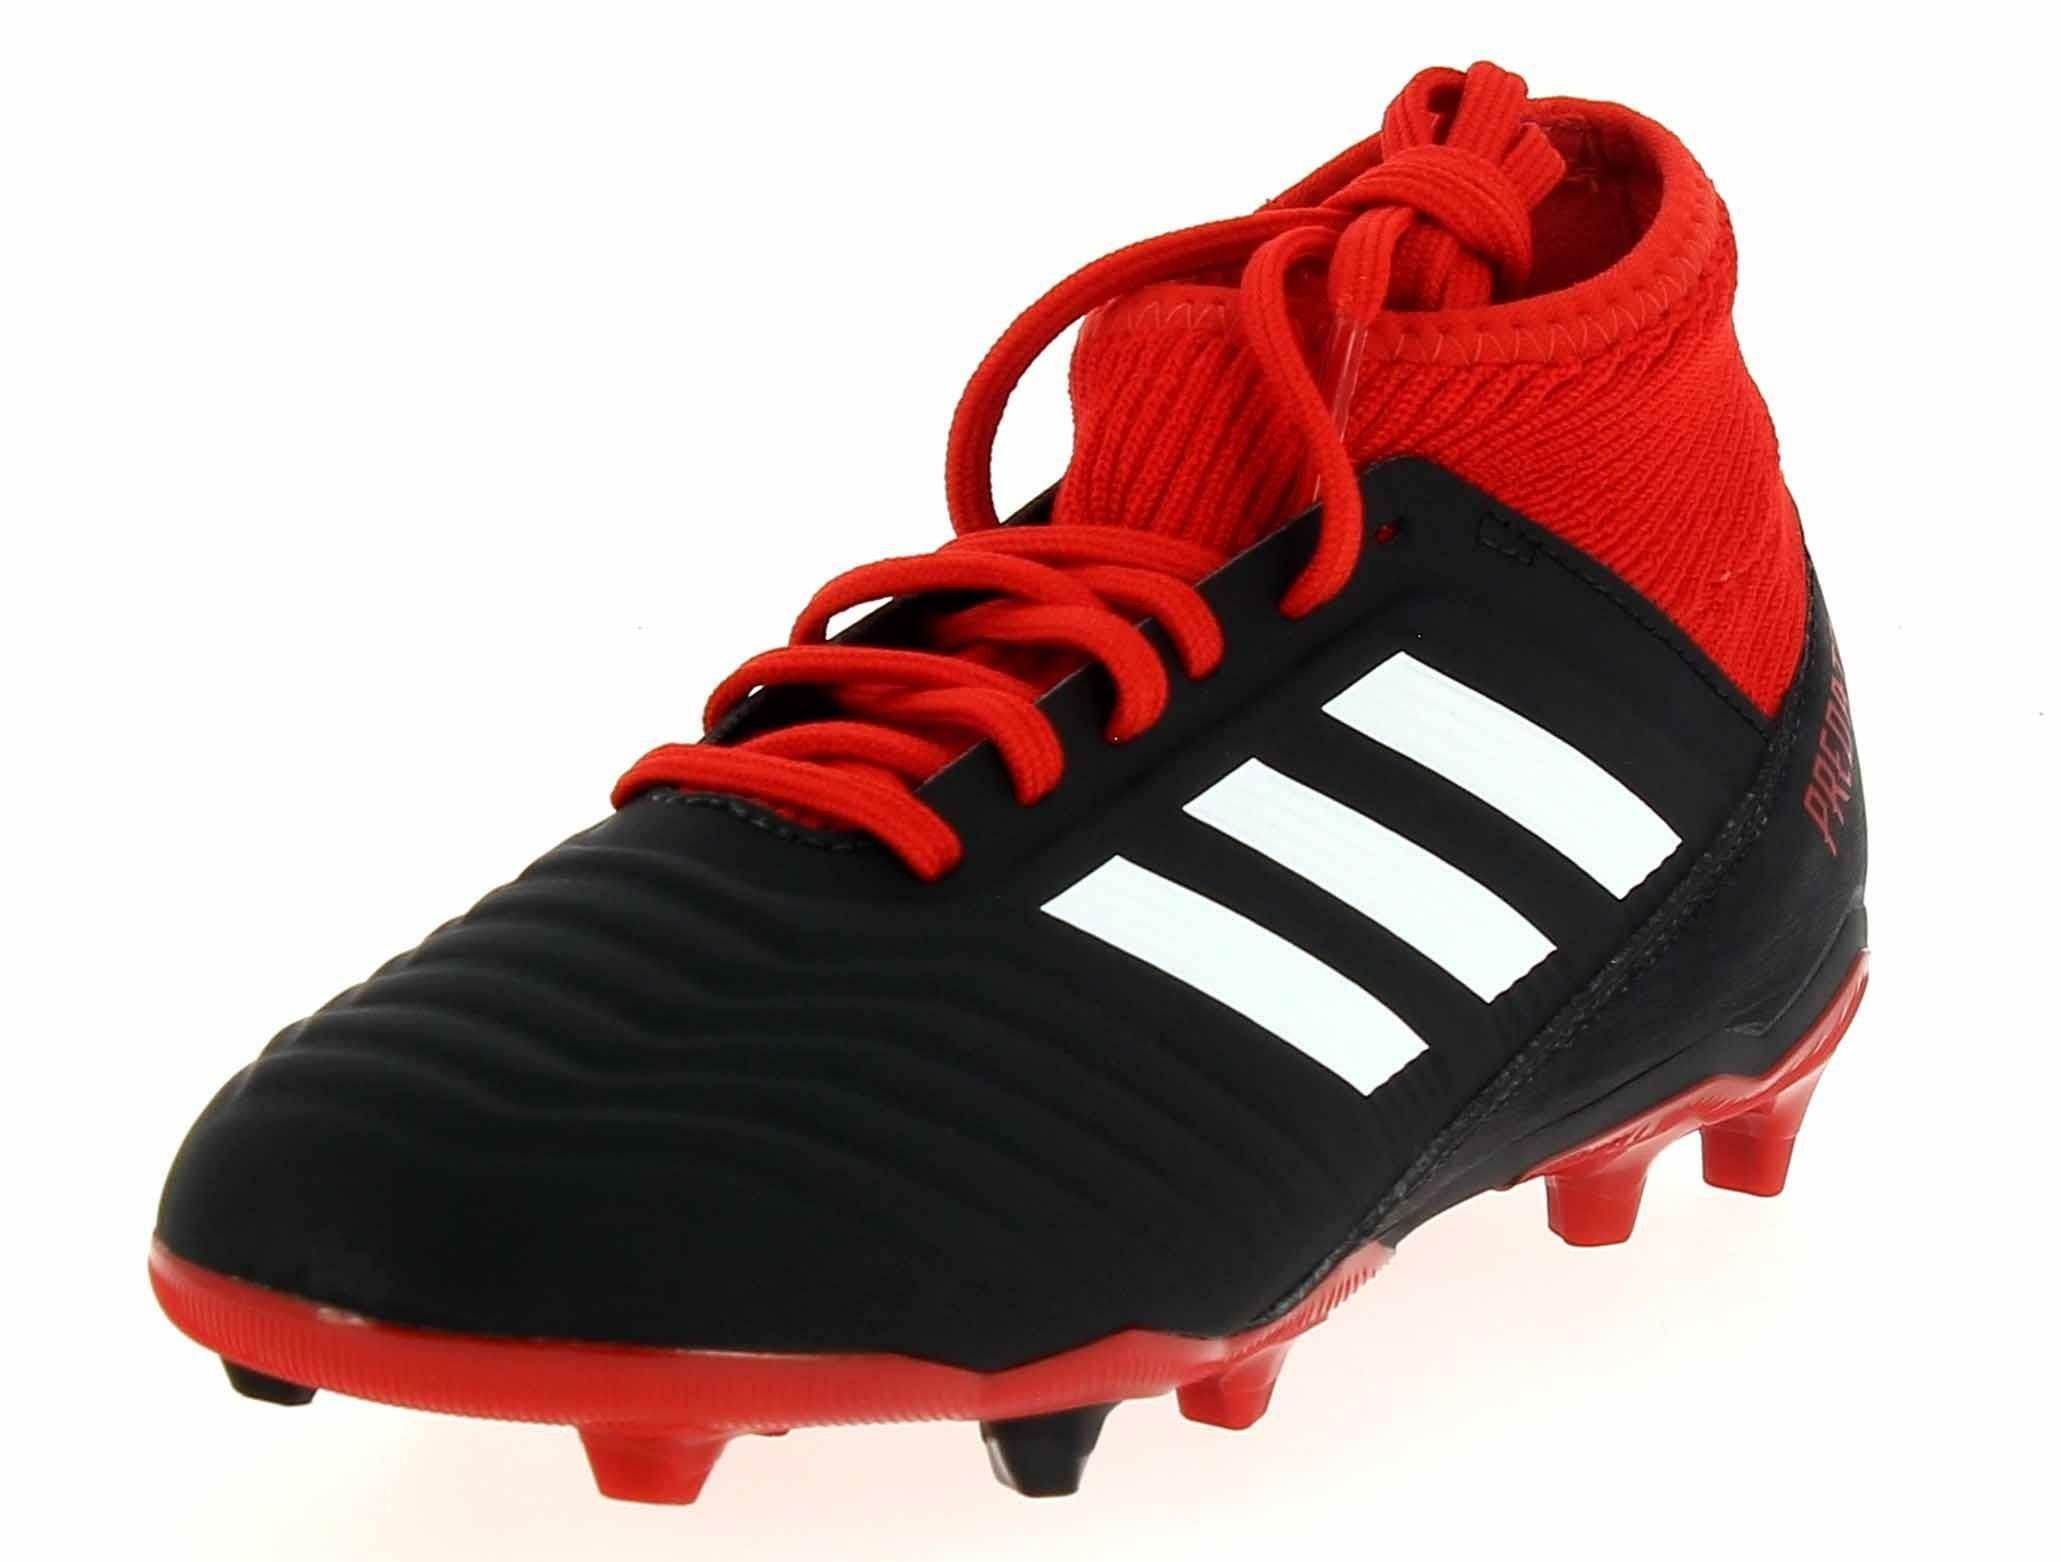 Details about ADIDAS Predator 18.3 FG Child Soccer Boots DB2318